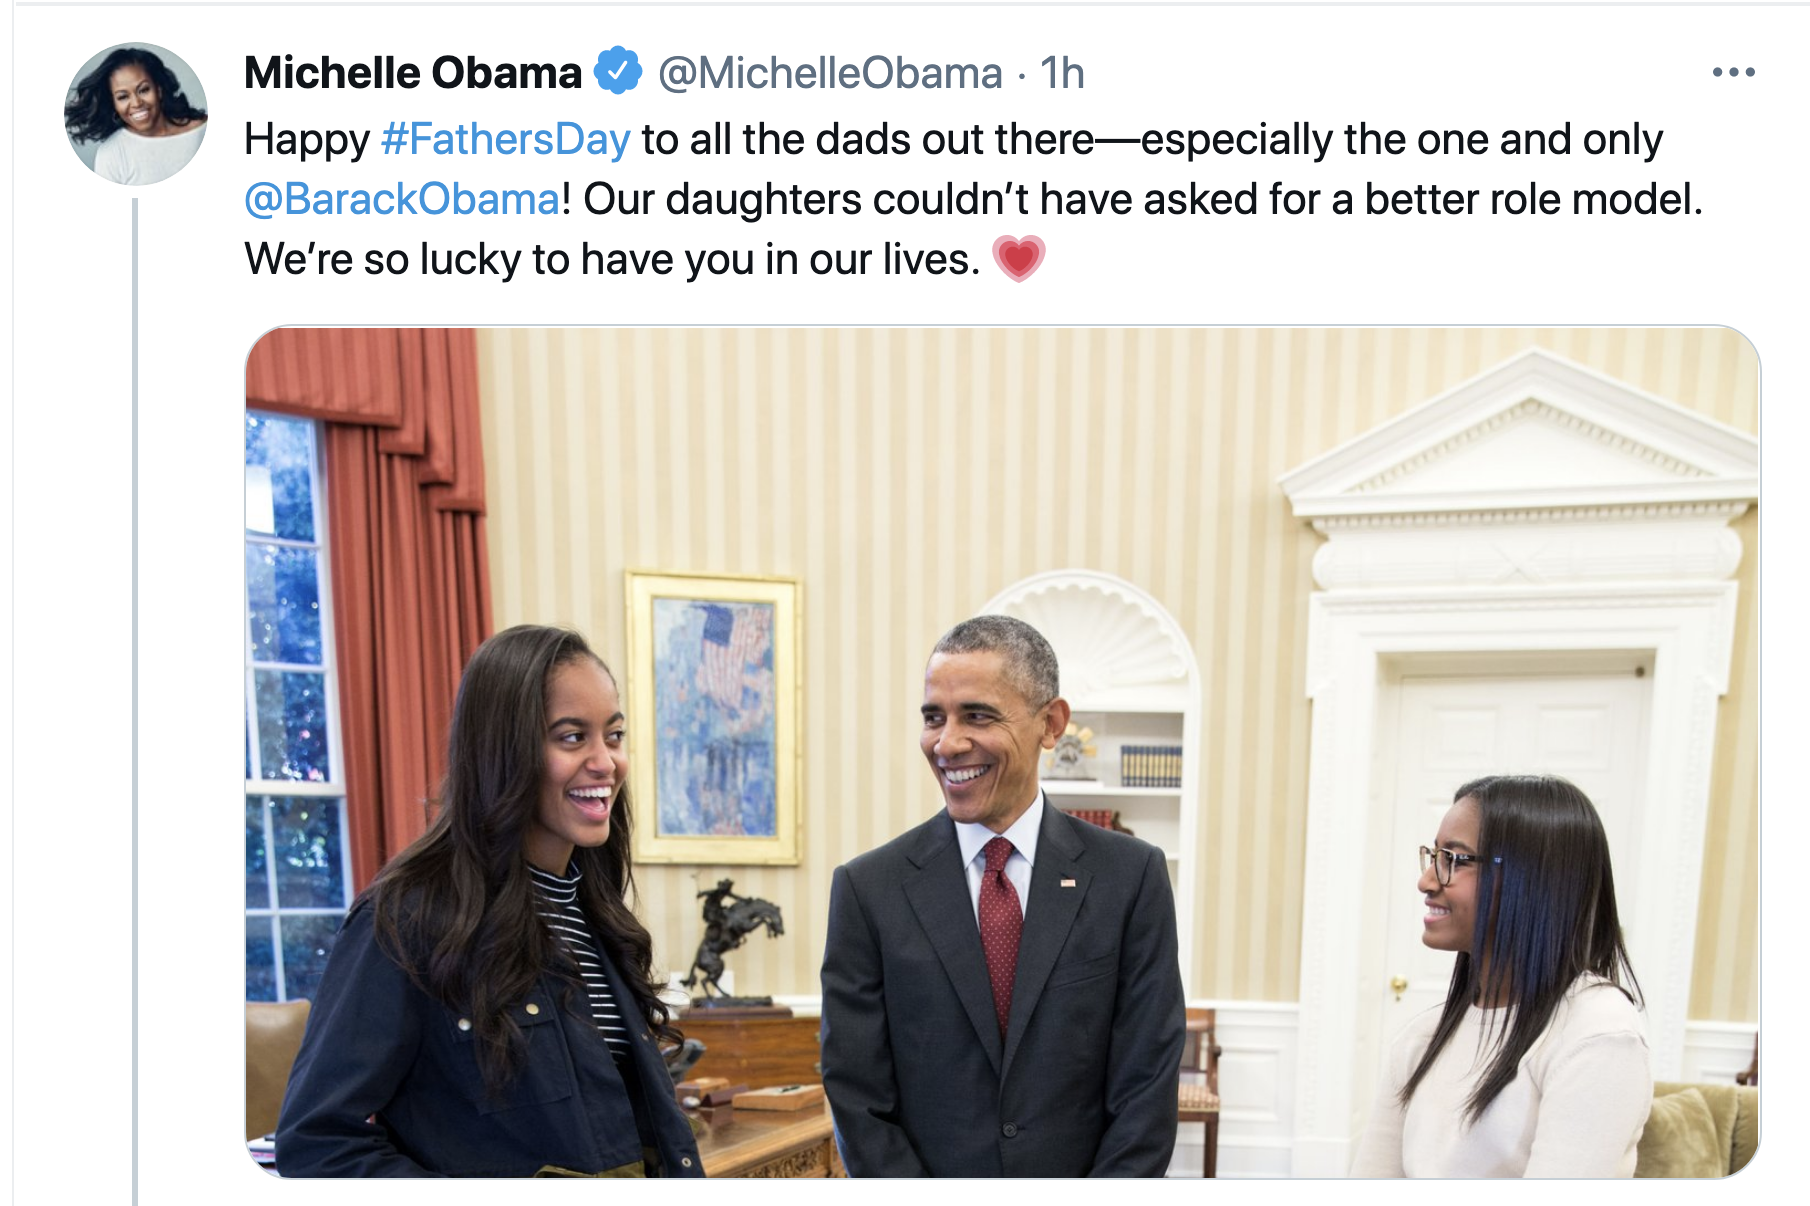 Screen-Shot-2021-06-20-at-9.25.13-AM Michelle Obama Celebrates Fathers Day With Message Of Love Celebrities Featured Michelle Obama Politics Top Stories